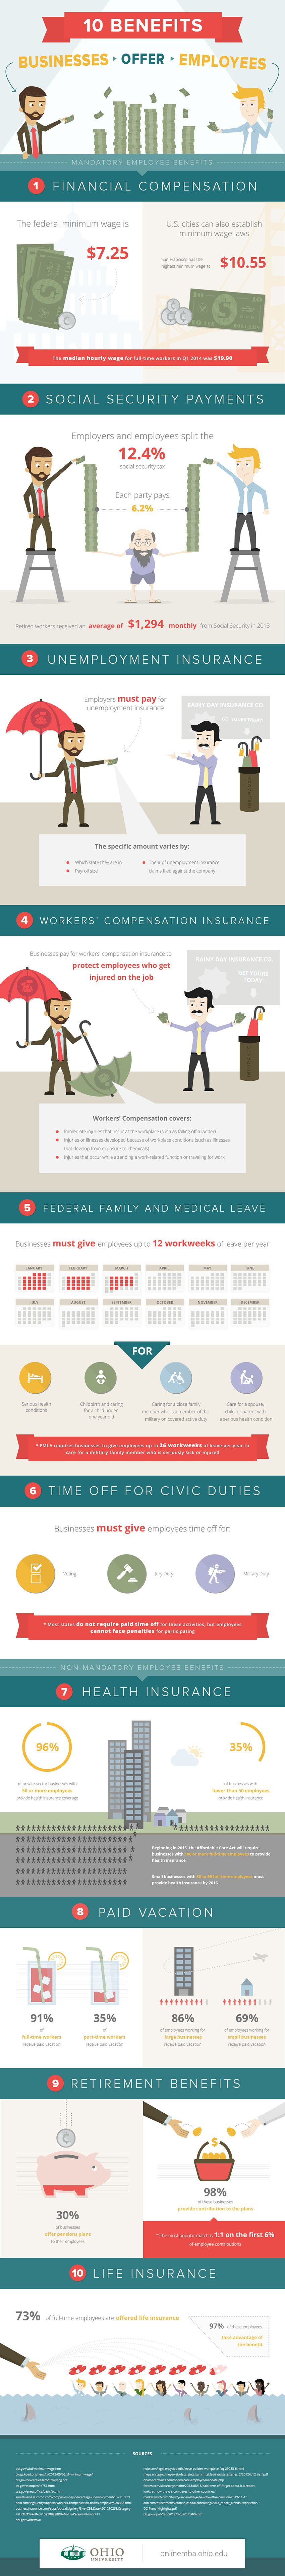 10 Benefits Businesses Offer Employees #Infographic